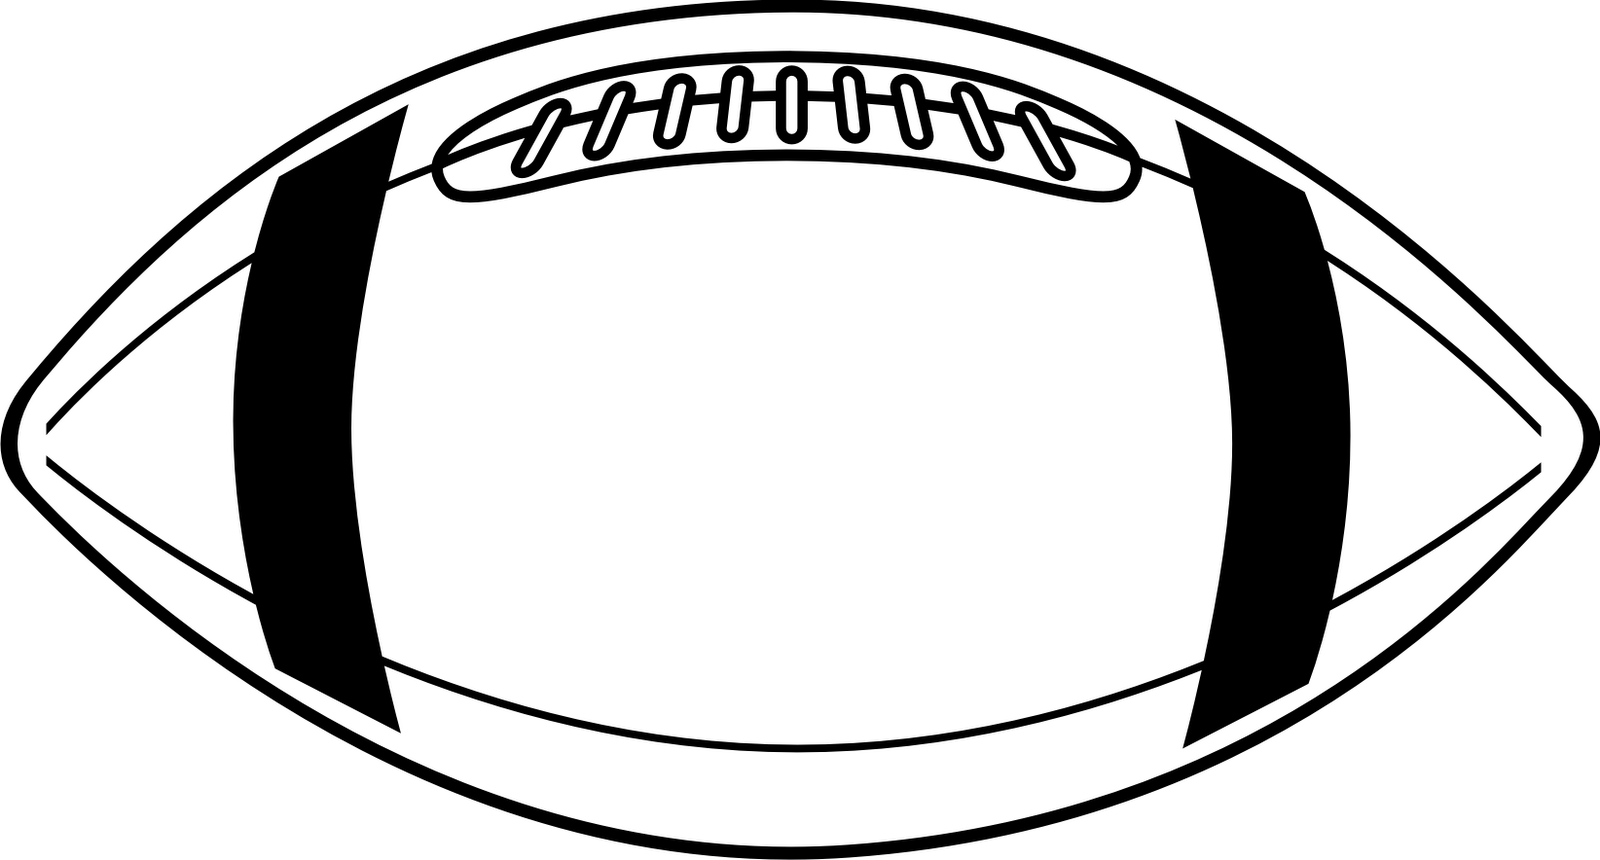 Clip Art Football Stadium Fot - Fotosearch Clipart